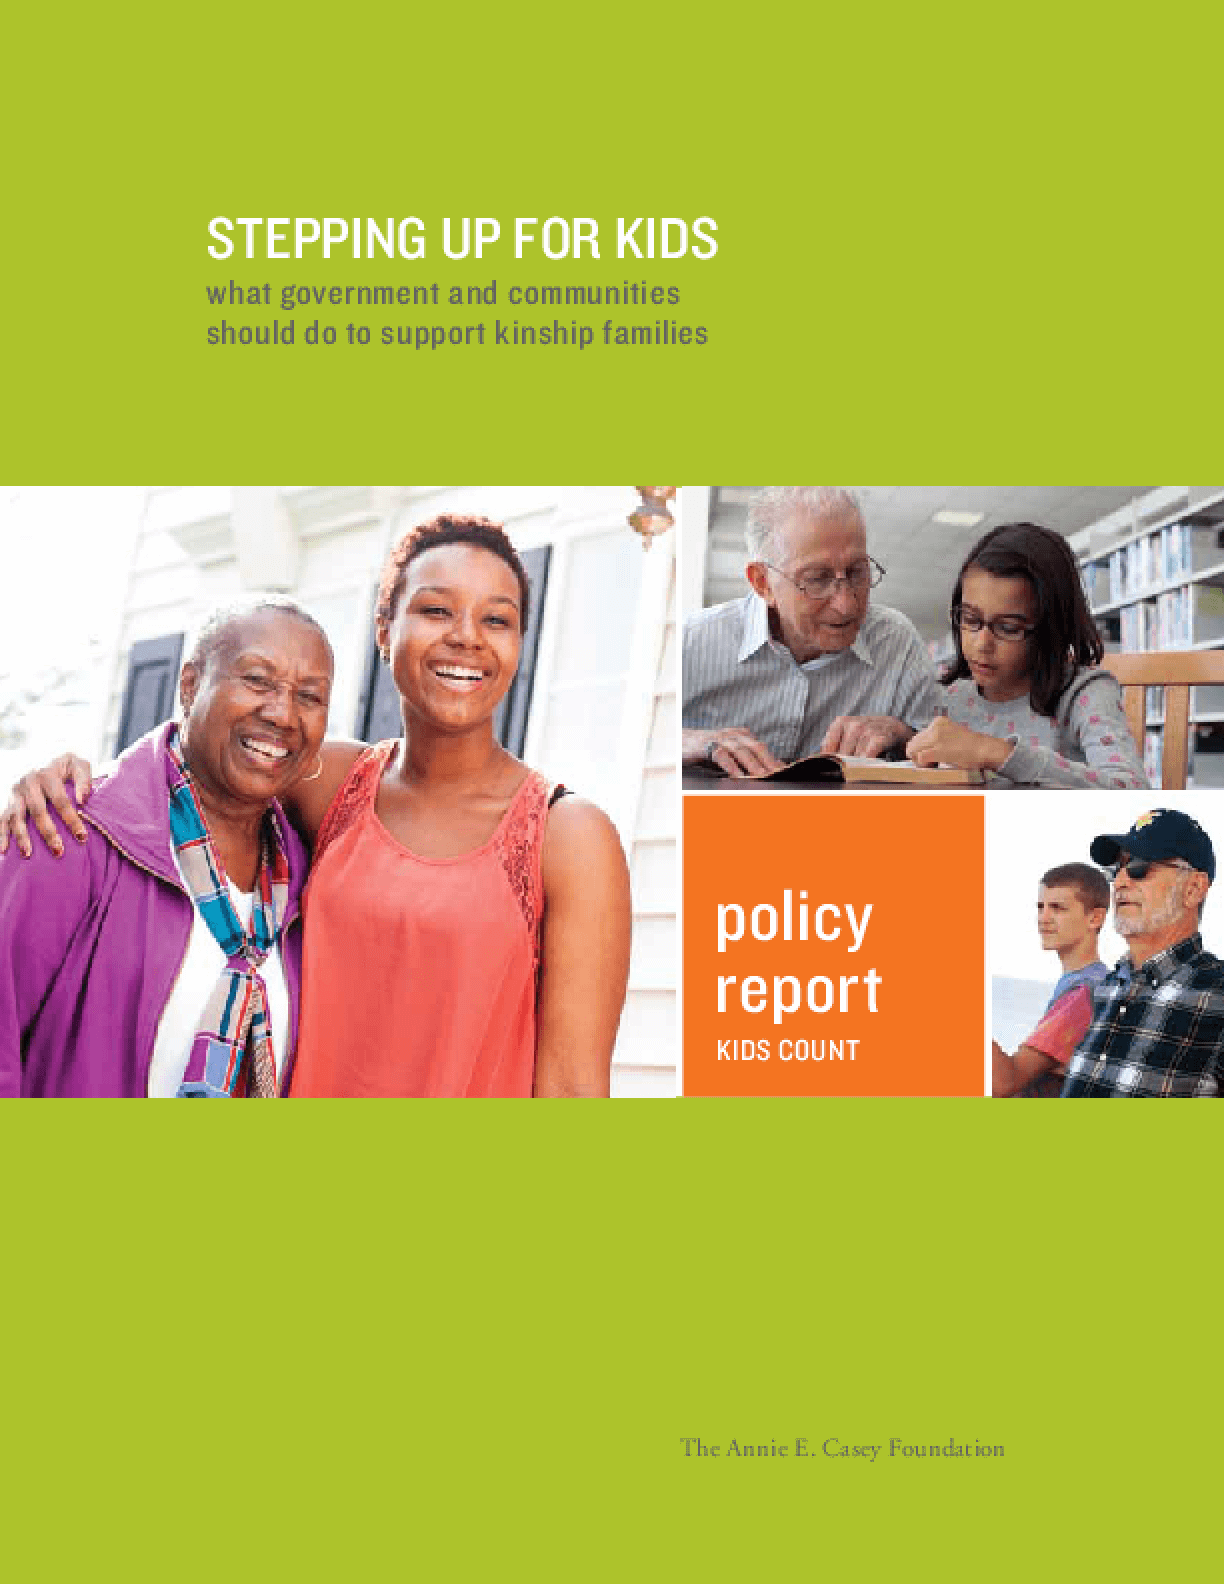 Stepping Up for Kids: What Government and Communities Should Do to Support Kinship Families